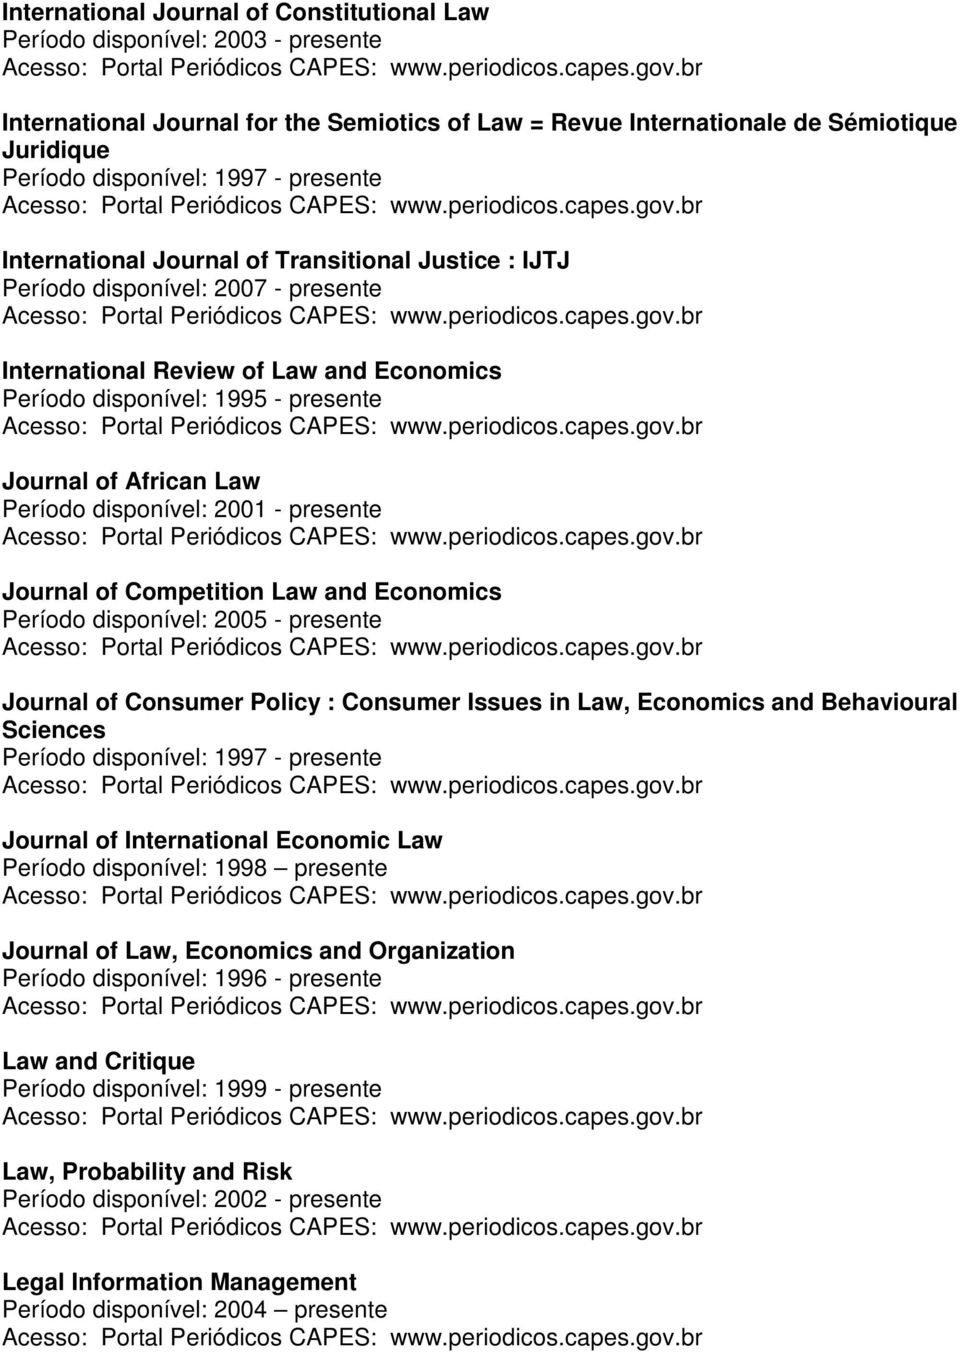 Law Período disponível: 2001 - presente Journal of Competition Law and Economics Período disponível: 2005 - presente Journal of Consumer Policy : Consumer Issues in Law, Economics and Behavioural